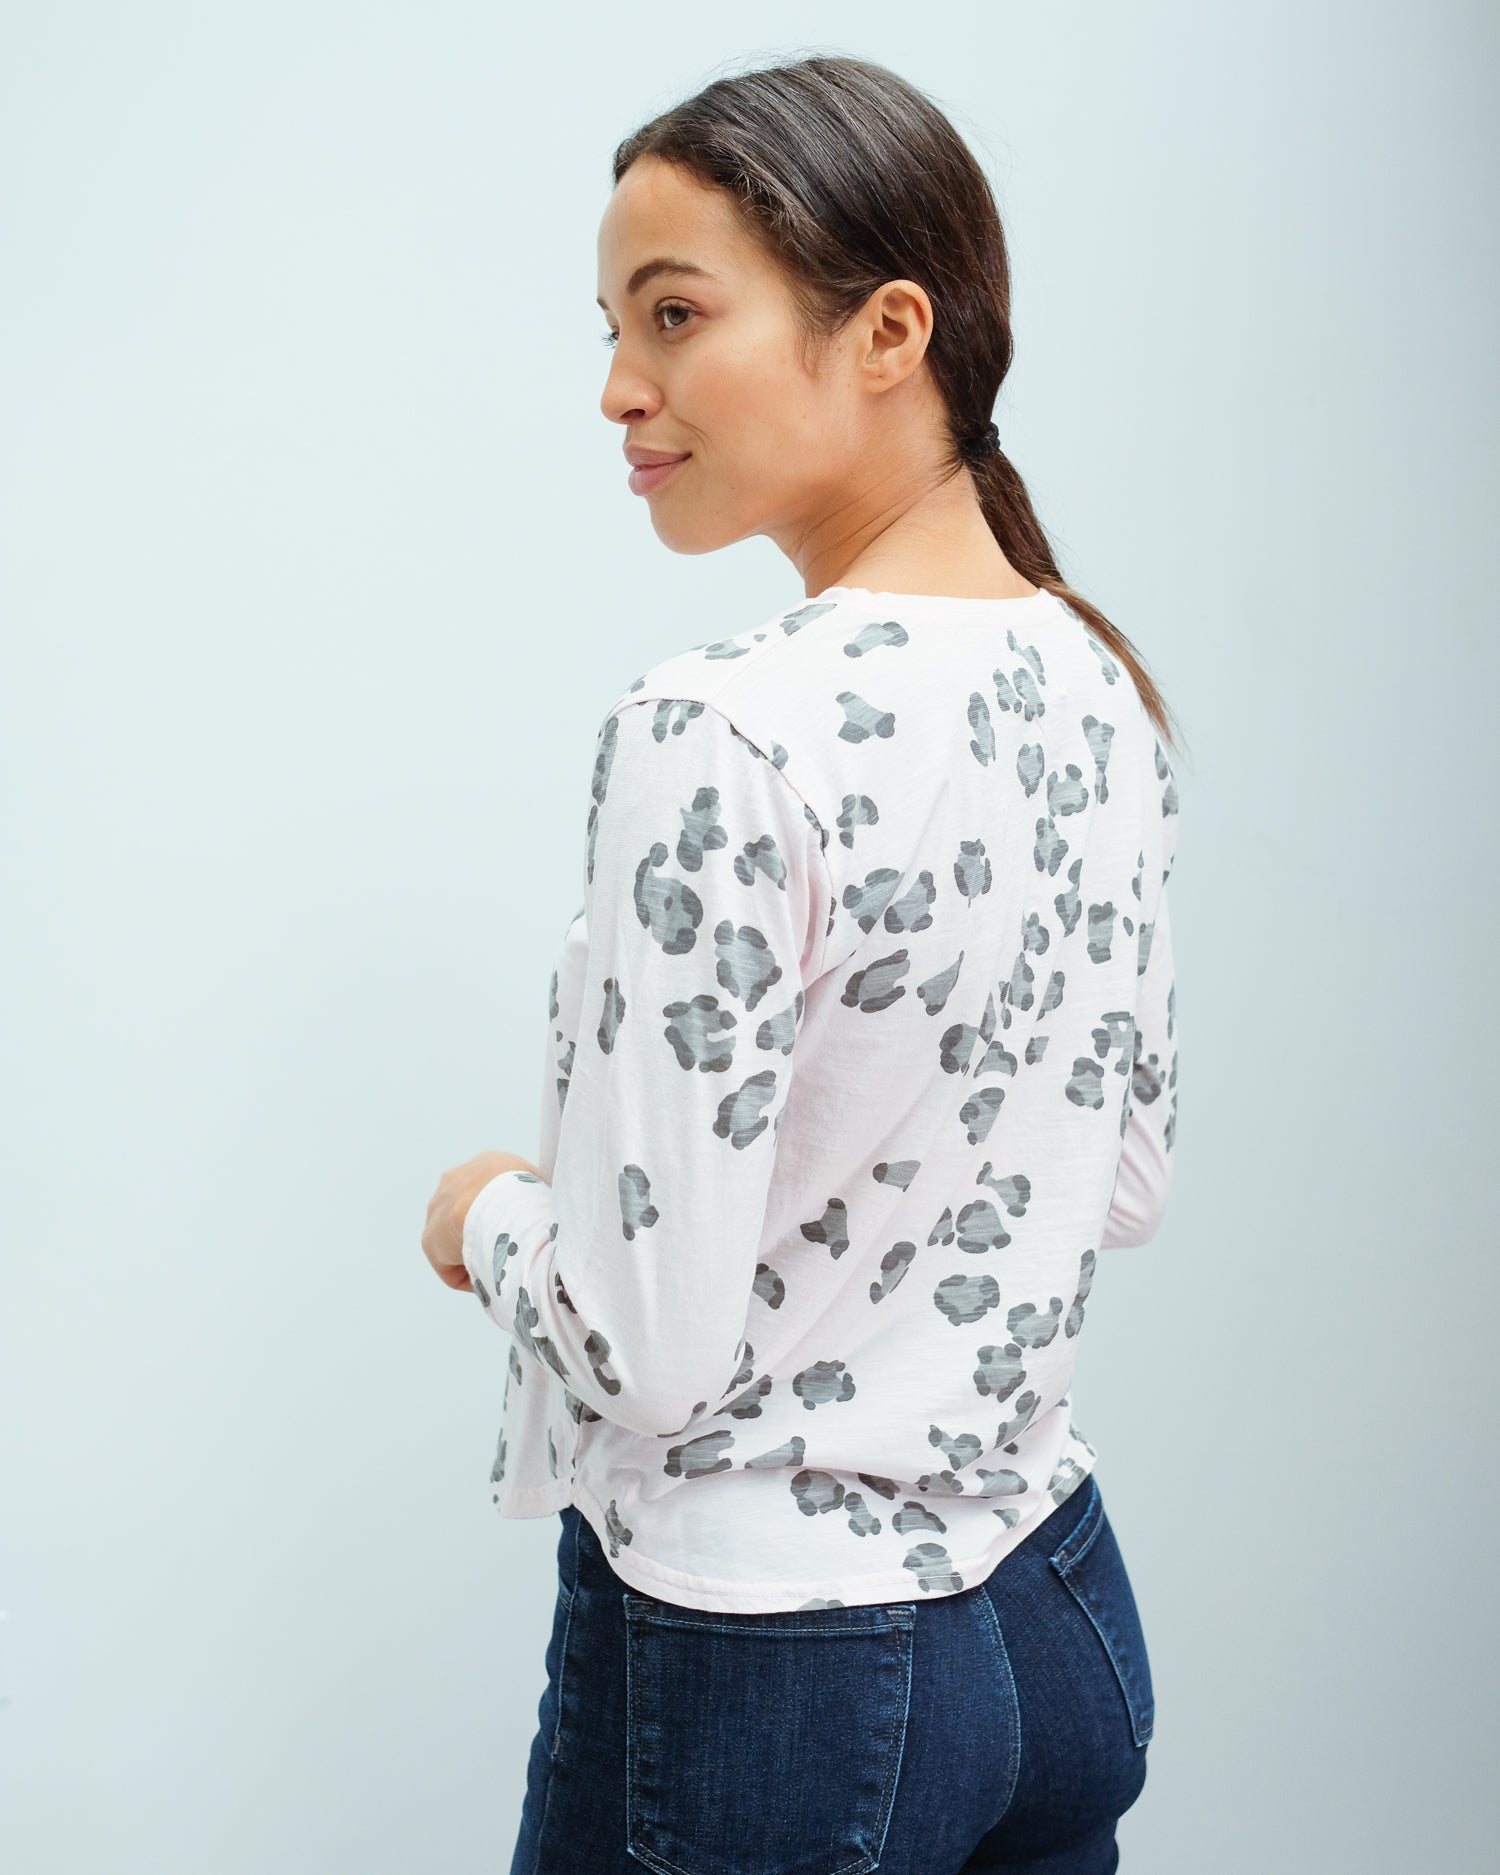 JU leopard tee in blossom